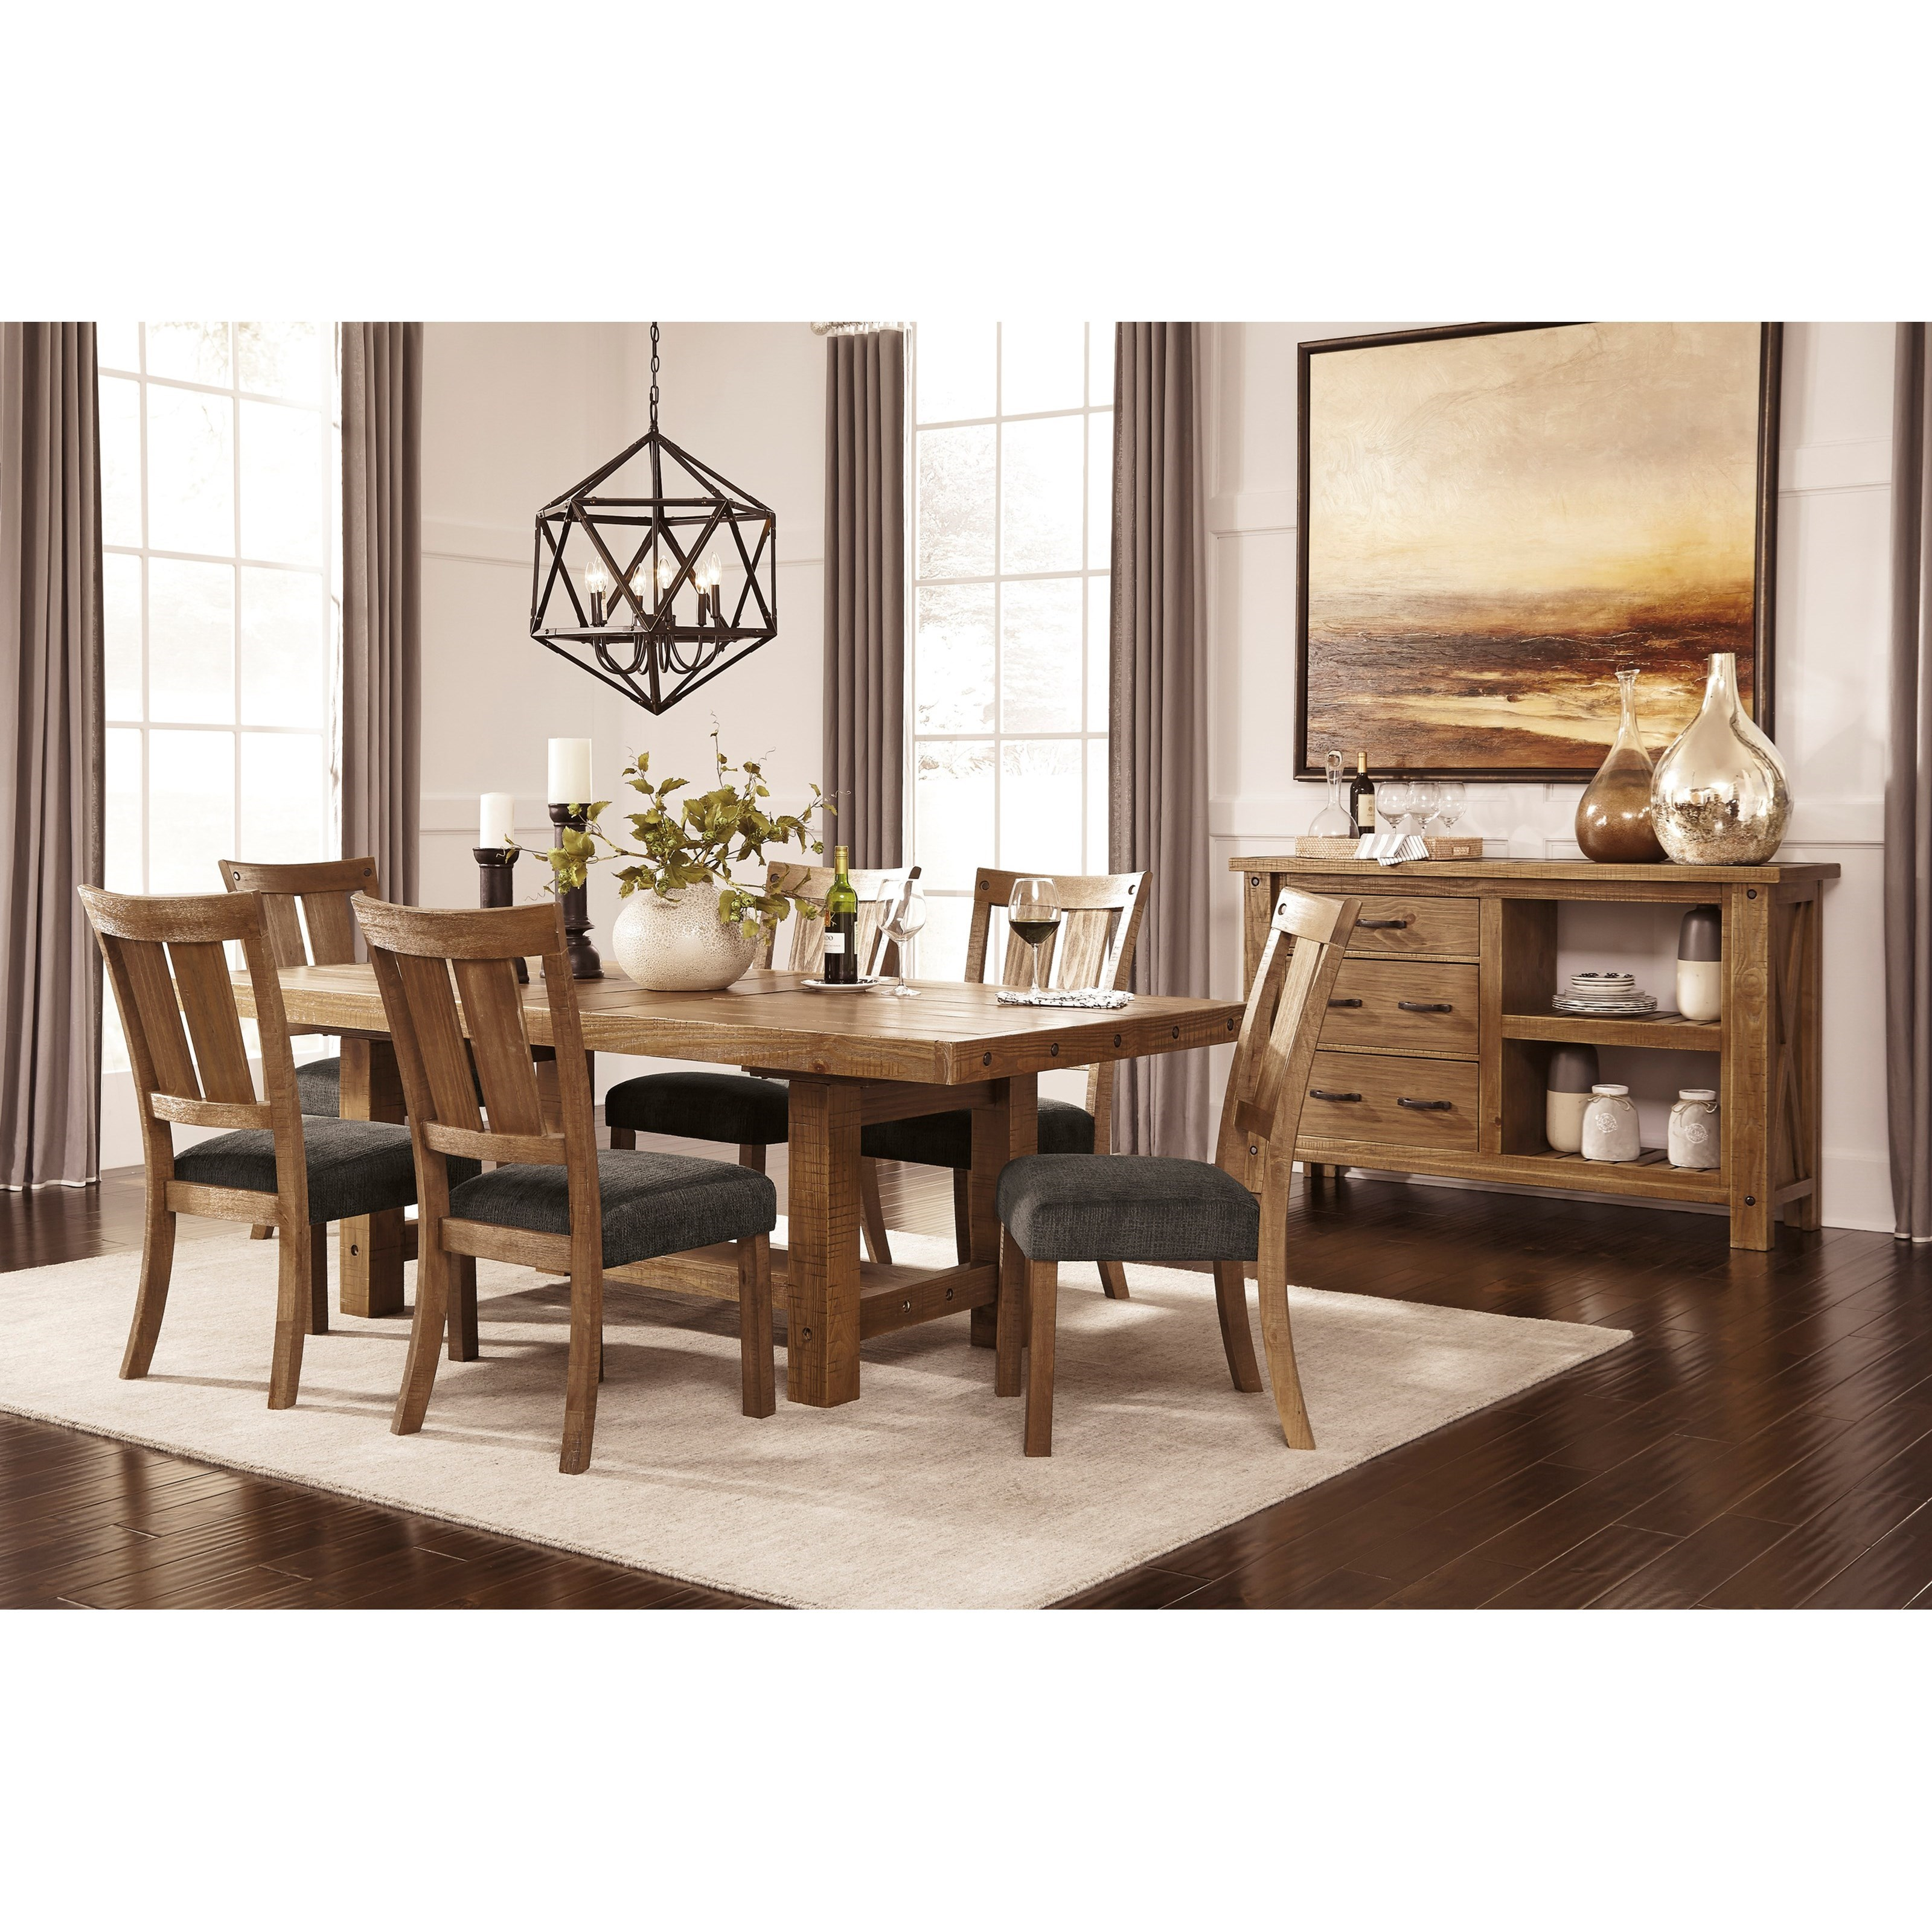 Ashley Furniture Dining: Dining Upholstered Side Chair By Signature Design By